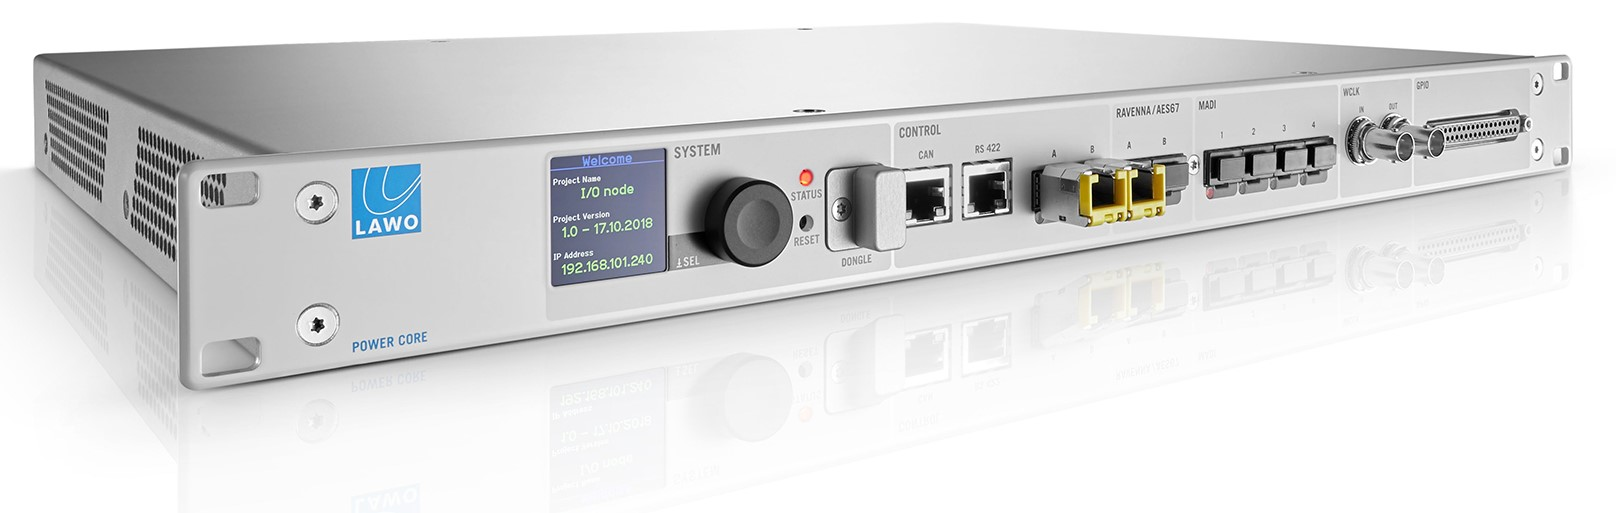 Lawo enthüllt Mixing-Engine Power Core MAX und Softwaretool AES67 Stream Monitor